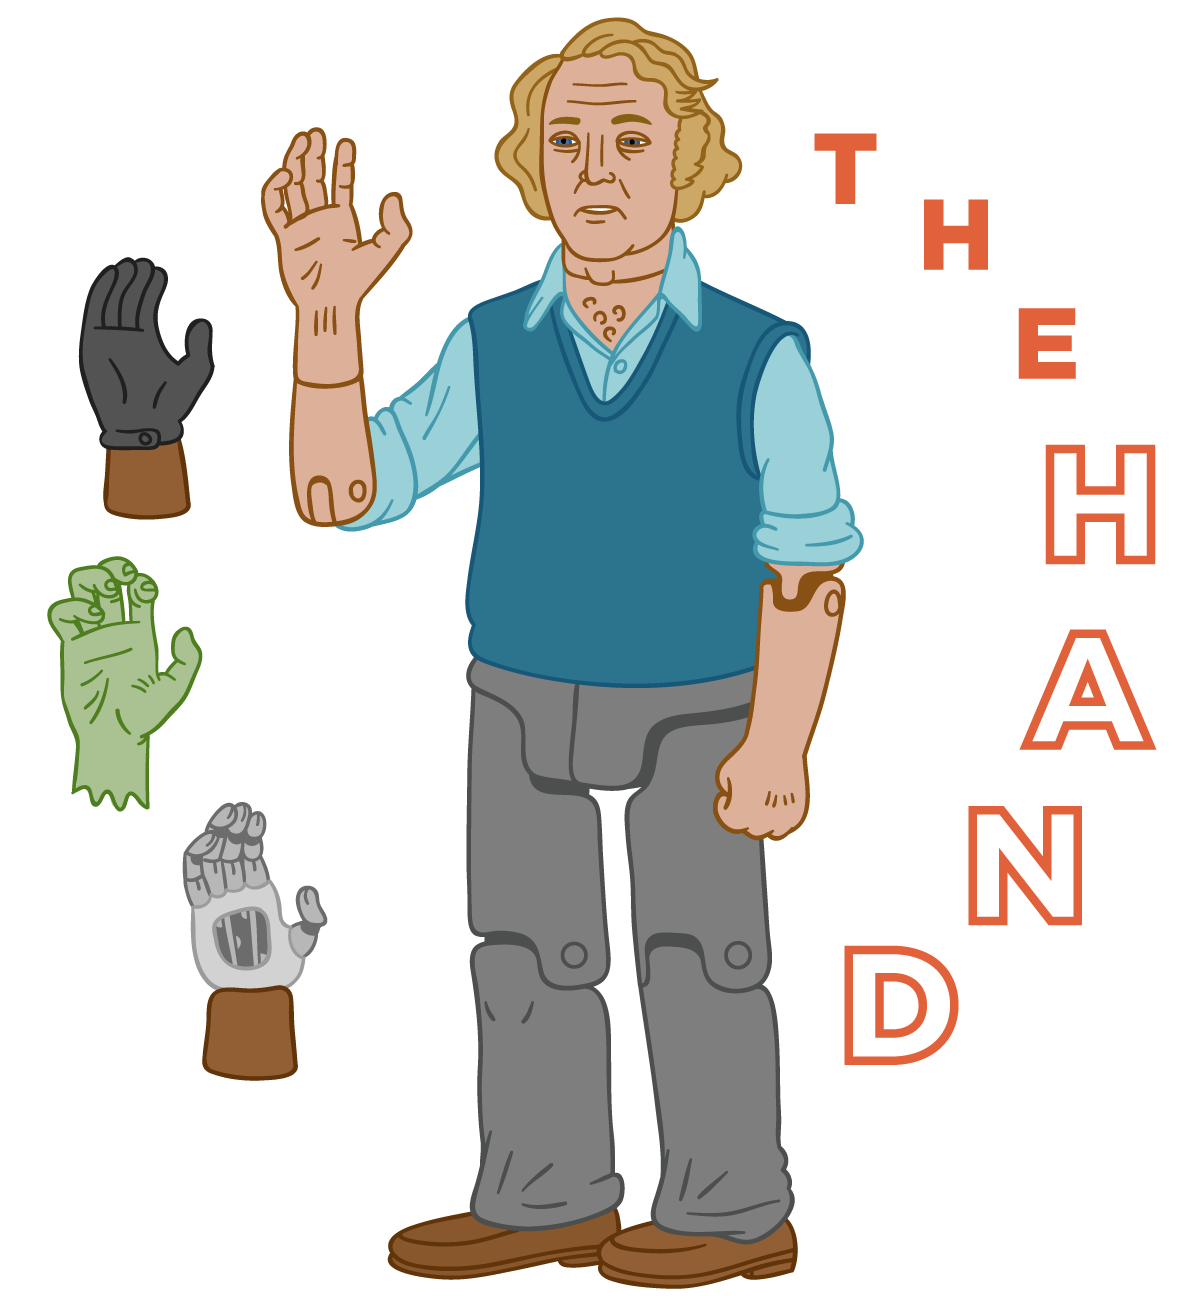 the-hand-1981-michael-caine